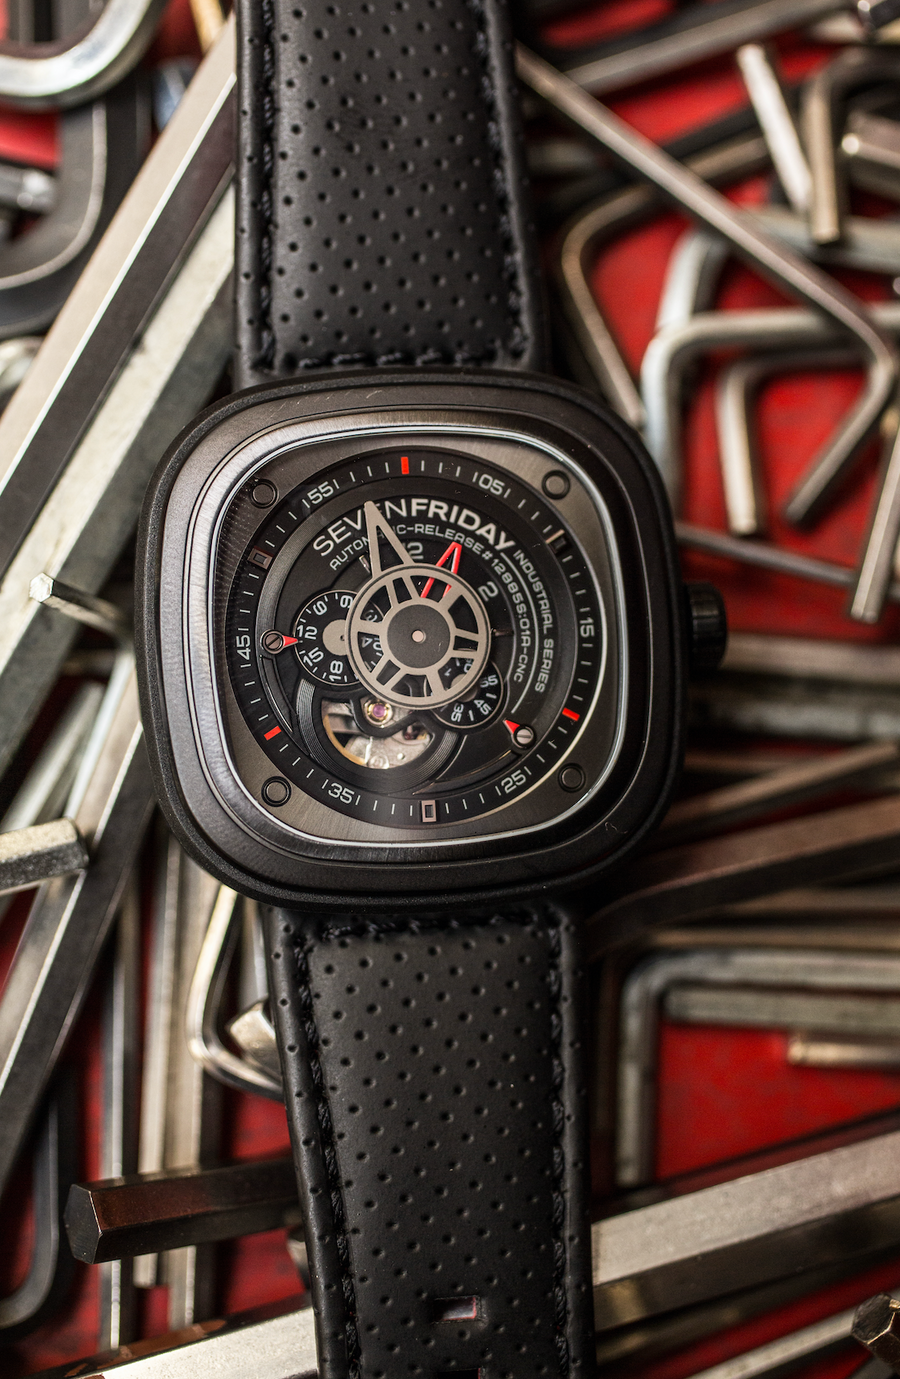 SEVENFRIDAY P3/01 : THE RACER THAT STARTED IT ALL